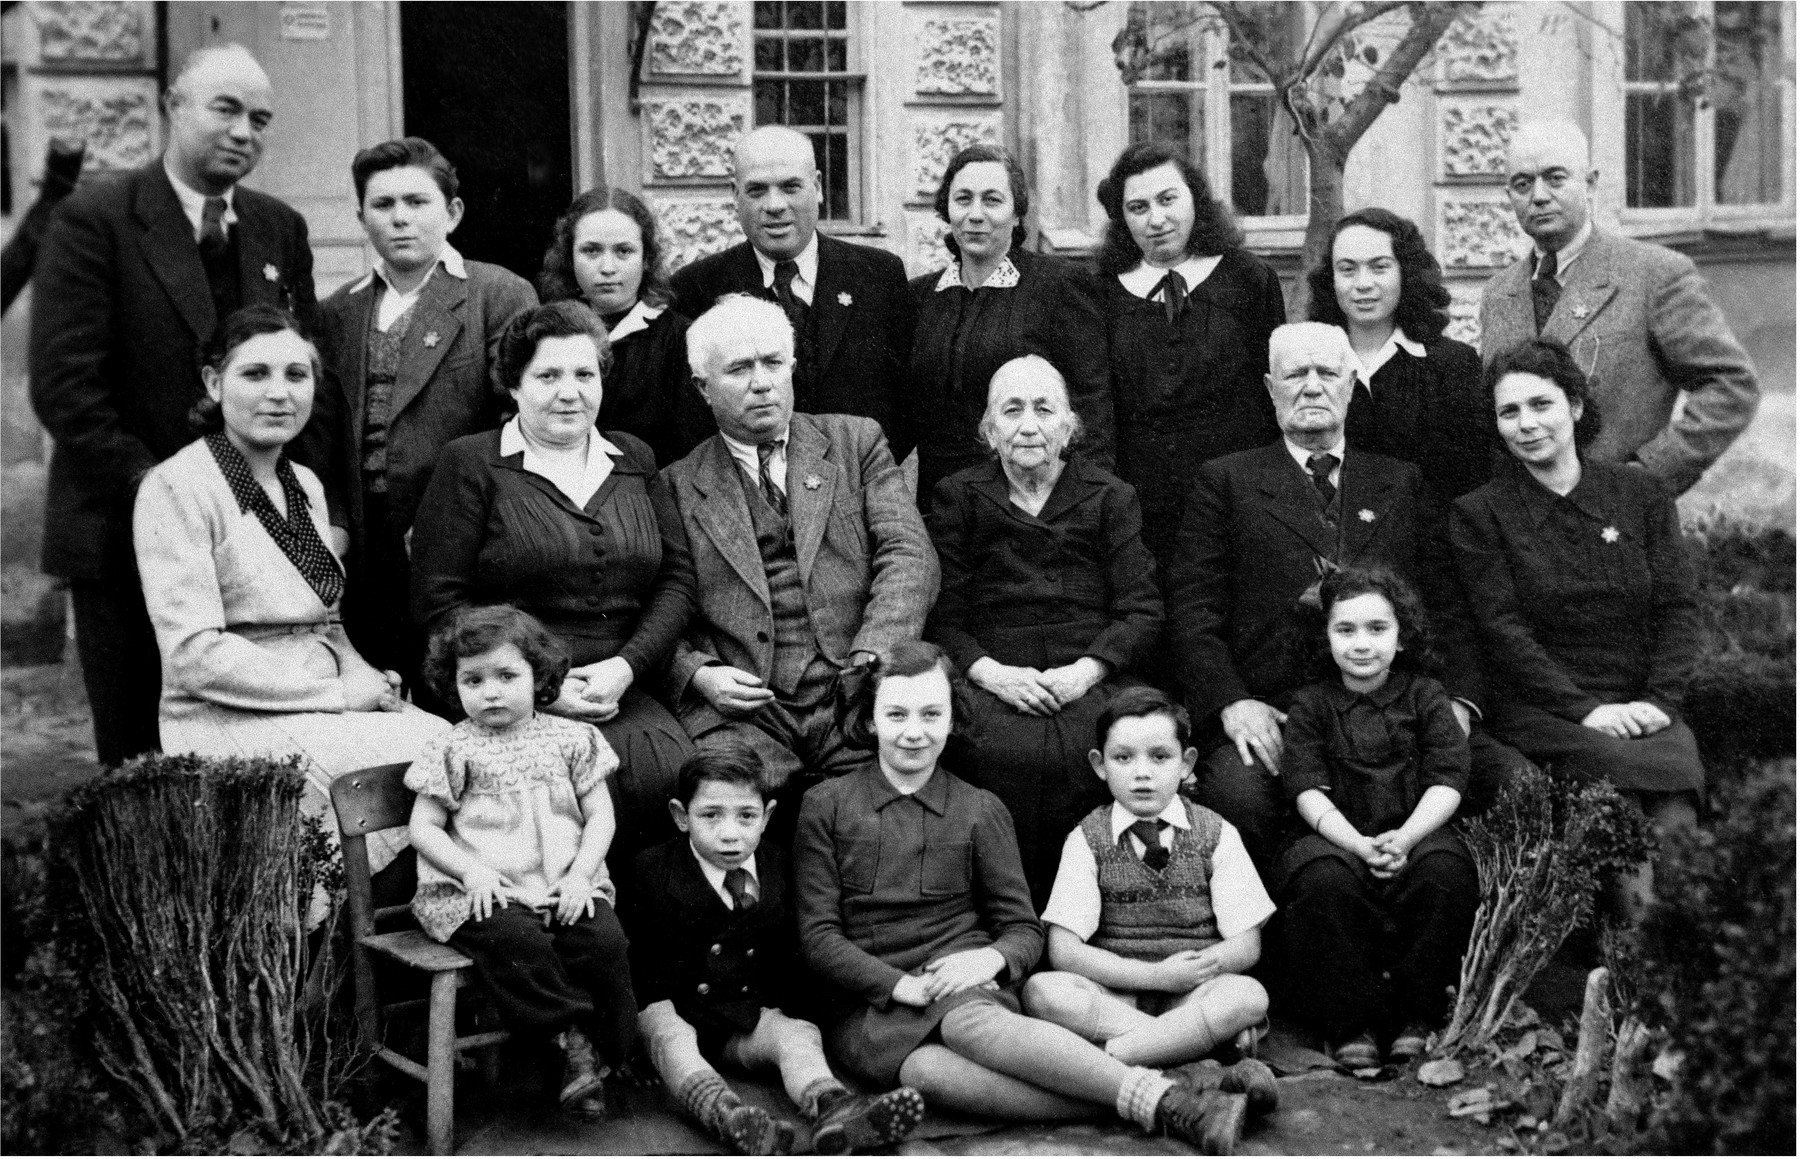 Members of the extended Baruch family pose outside their residence in Kyustendil, Bulgaria, following their expulsion from the capital, Sofia.  During the period of their exile in the provinces, the members of extended Baruch family lived in the home of Miriam and Pinkas Baruch, who had retained their house in Kyustendil after moving to Sofia in the 1930s.  Pictured in the top row, from right to left, are: Samuel Baruch, Ida Haimova, Mimi Baruch, Oretta Haimova, Izhak Haimov, Mary Haimova, Israel Baruch and Joseph Baruch.  In the middle row, from right to left, are: Speranza Baruch, Pinkas Baruch, Miriam Baruch, Yako Baruch, Rachel Baruch and Esther Baruch.  In the front row, from right to left, are: Rosa Baruch, Pinko Baruch, Mary Baruch, Subcho Haimov, Oretta Haimovi and Madlena Baruch.